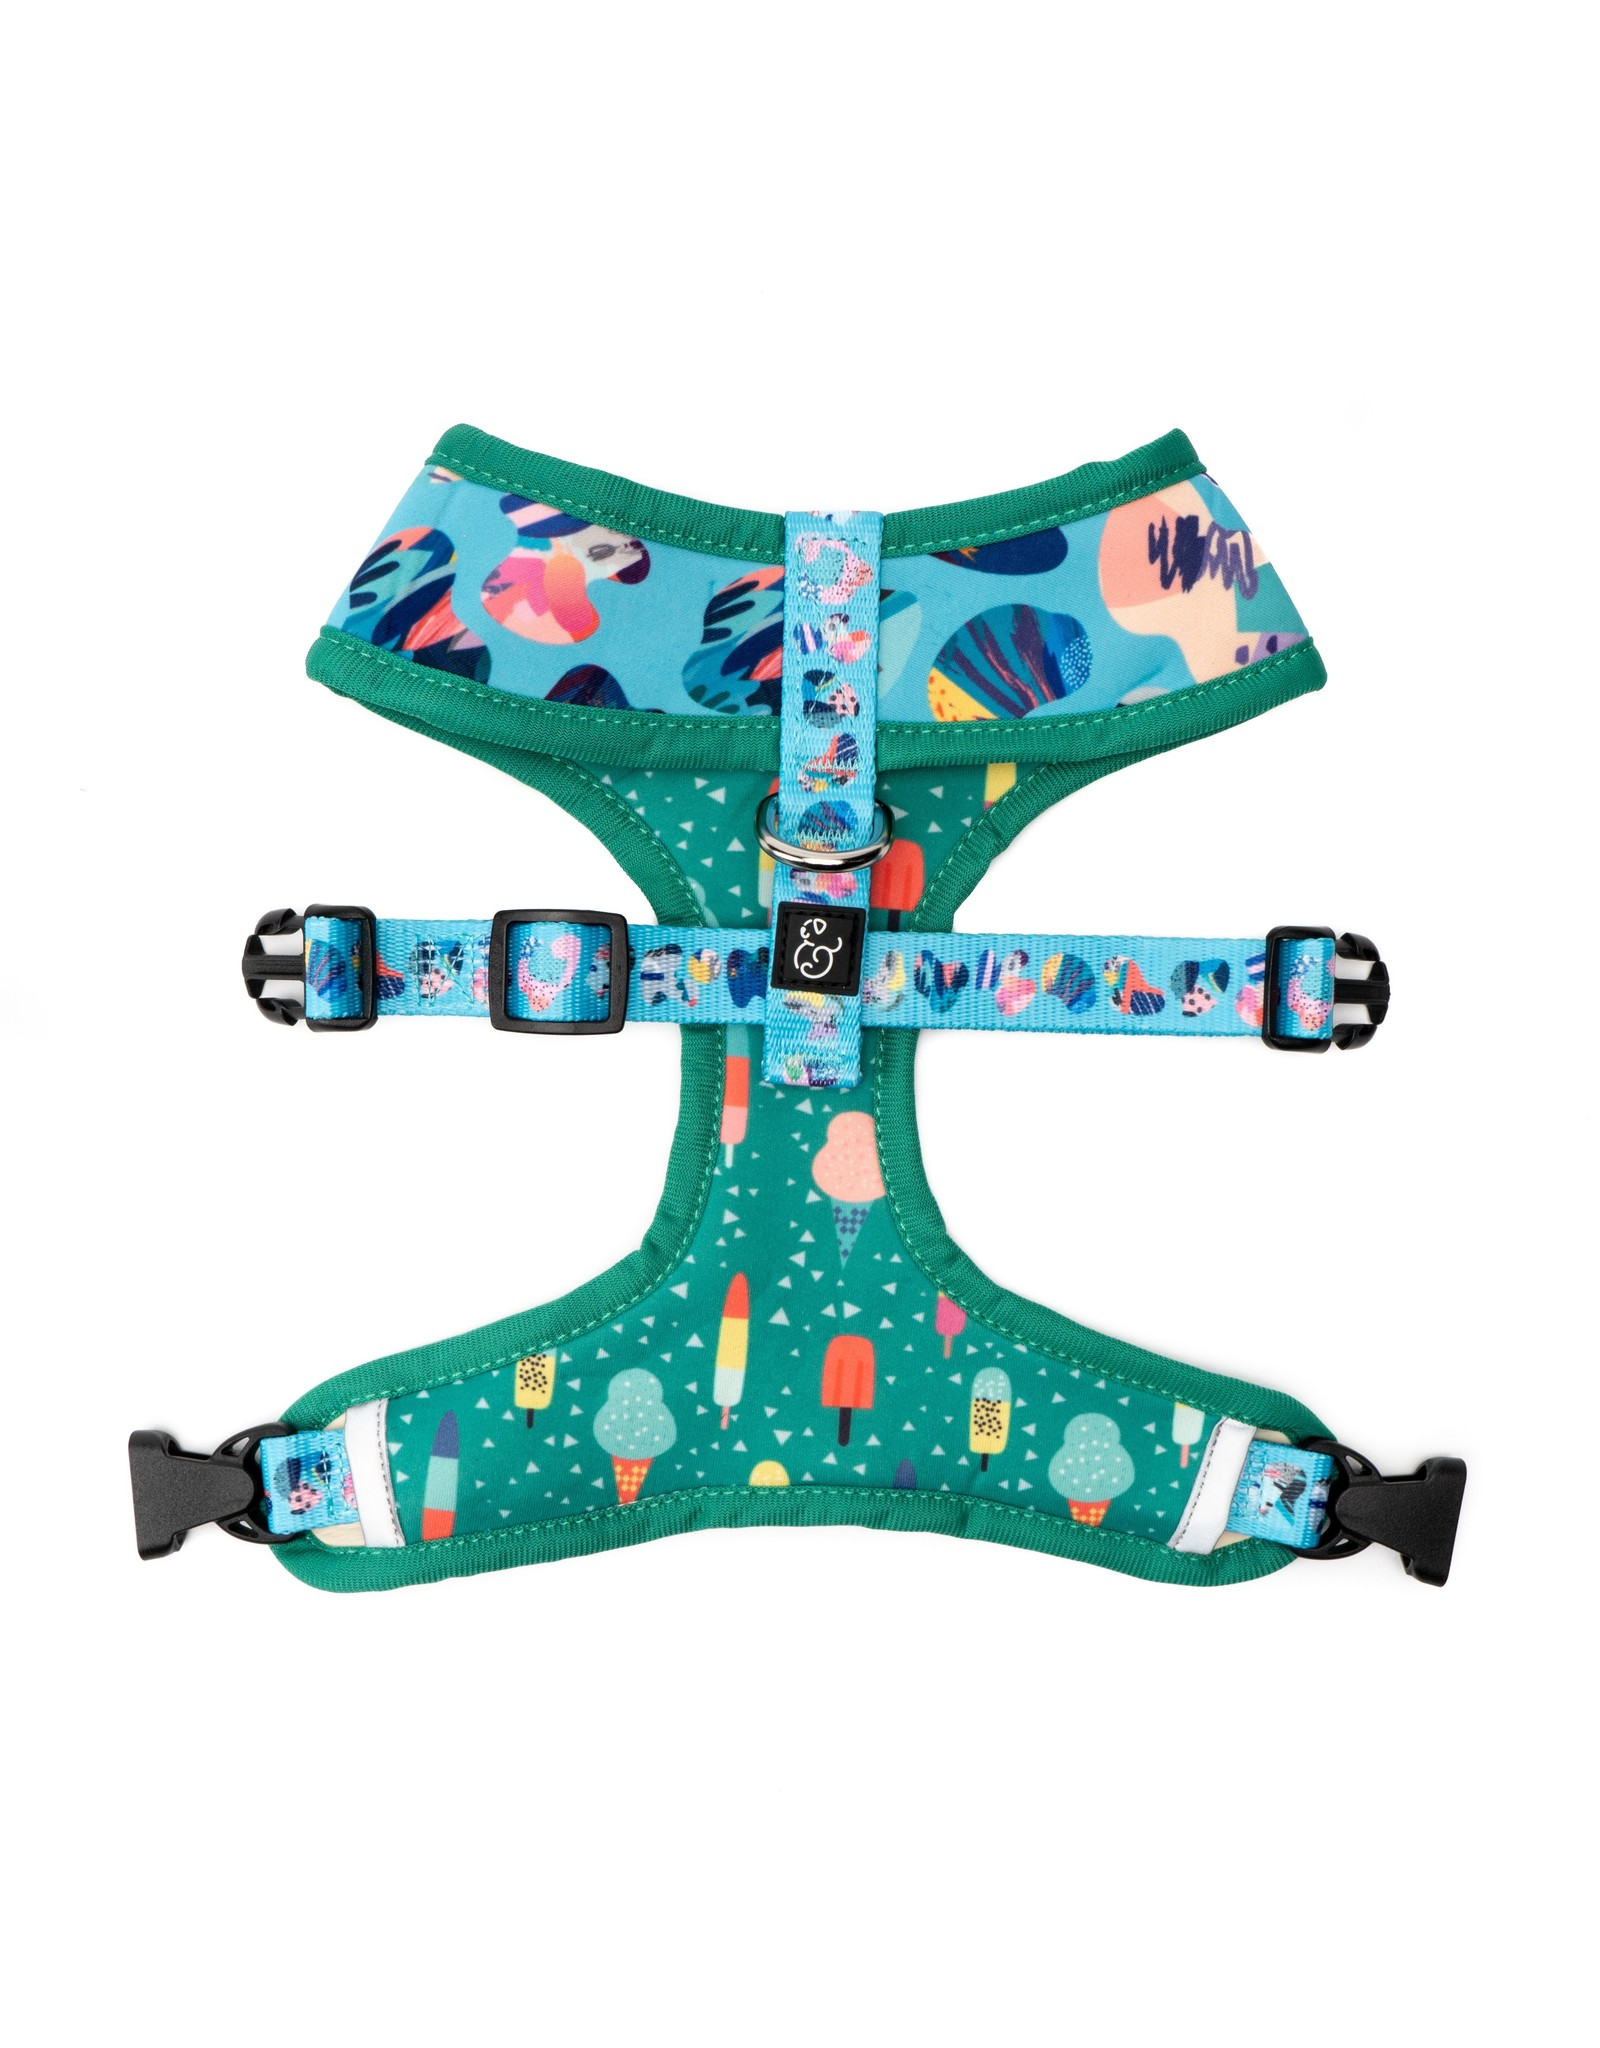 Lucy & Co. LUCY & CO. ICE CREAM DREAM REVERSIBLE HARNESS